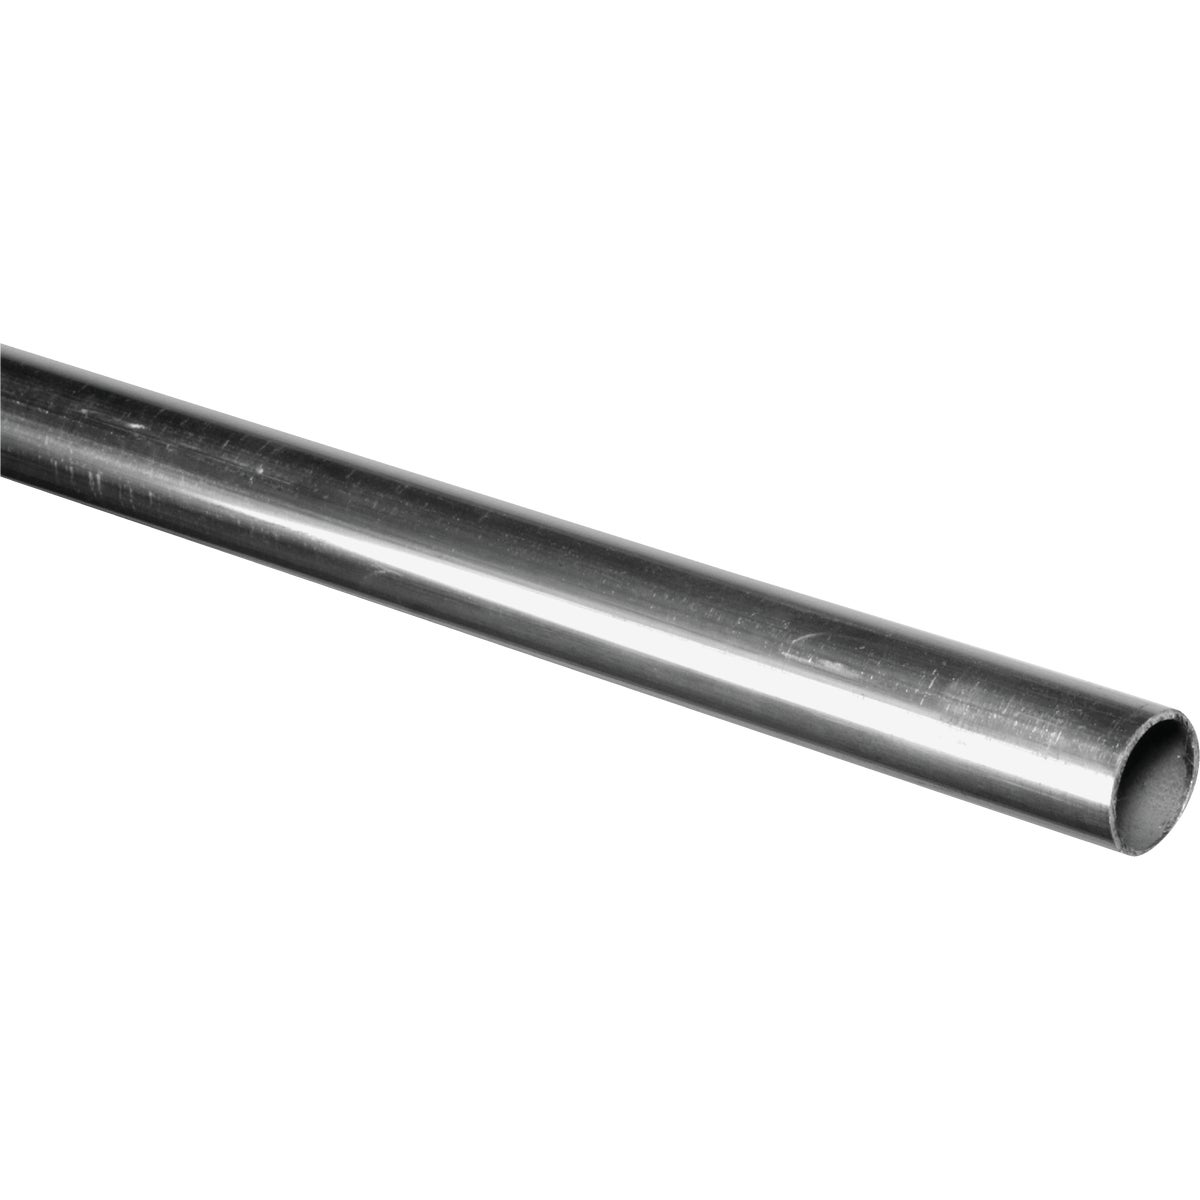 3/4X6' ALUM ROUND TUBE - N247536 by National Mfg Co